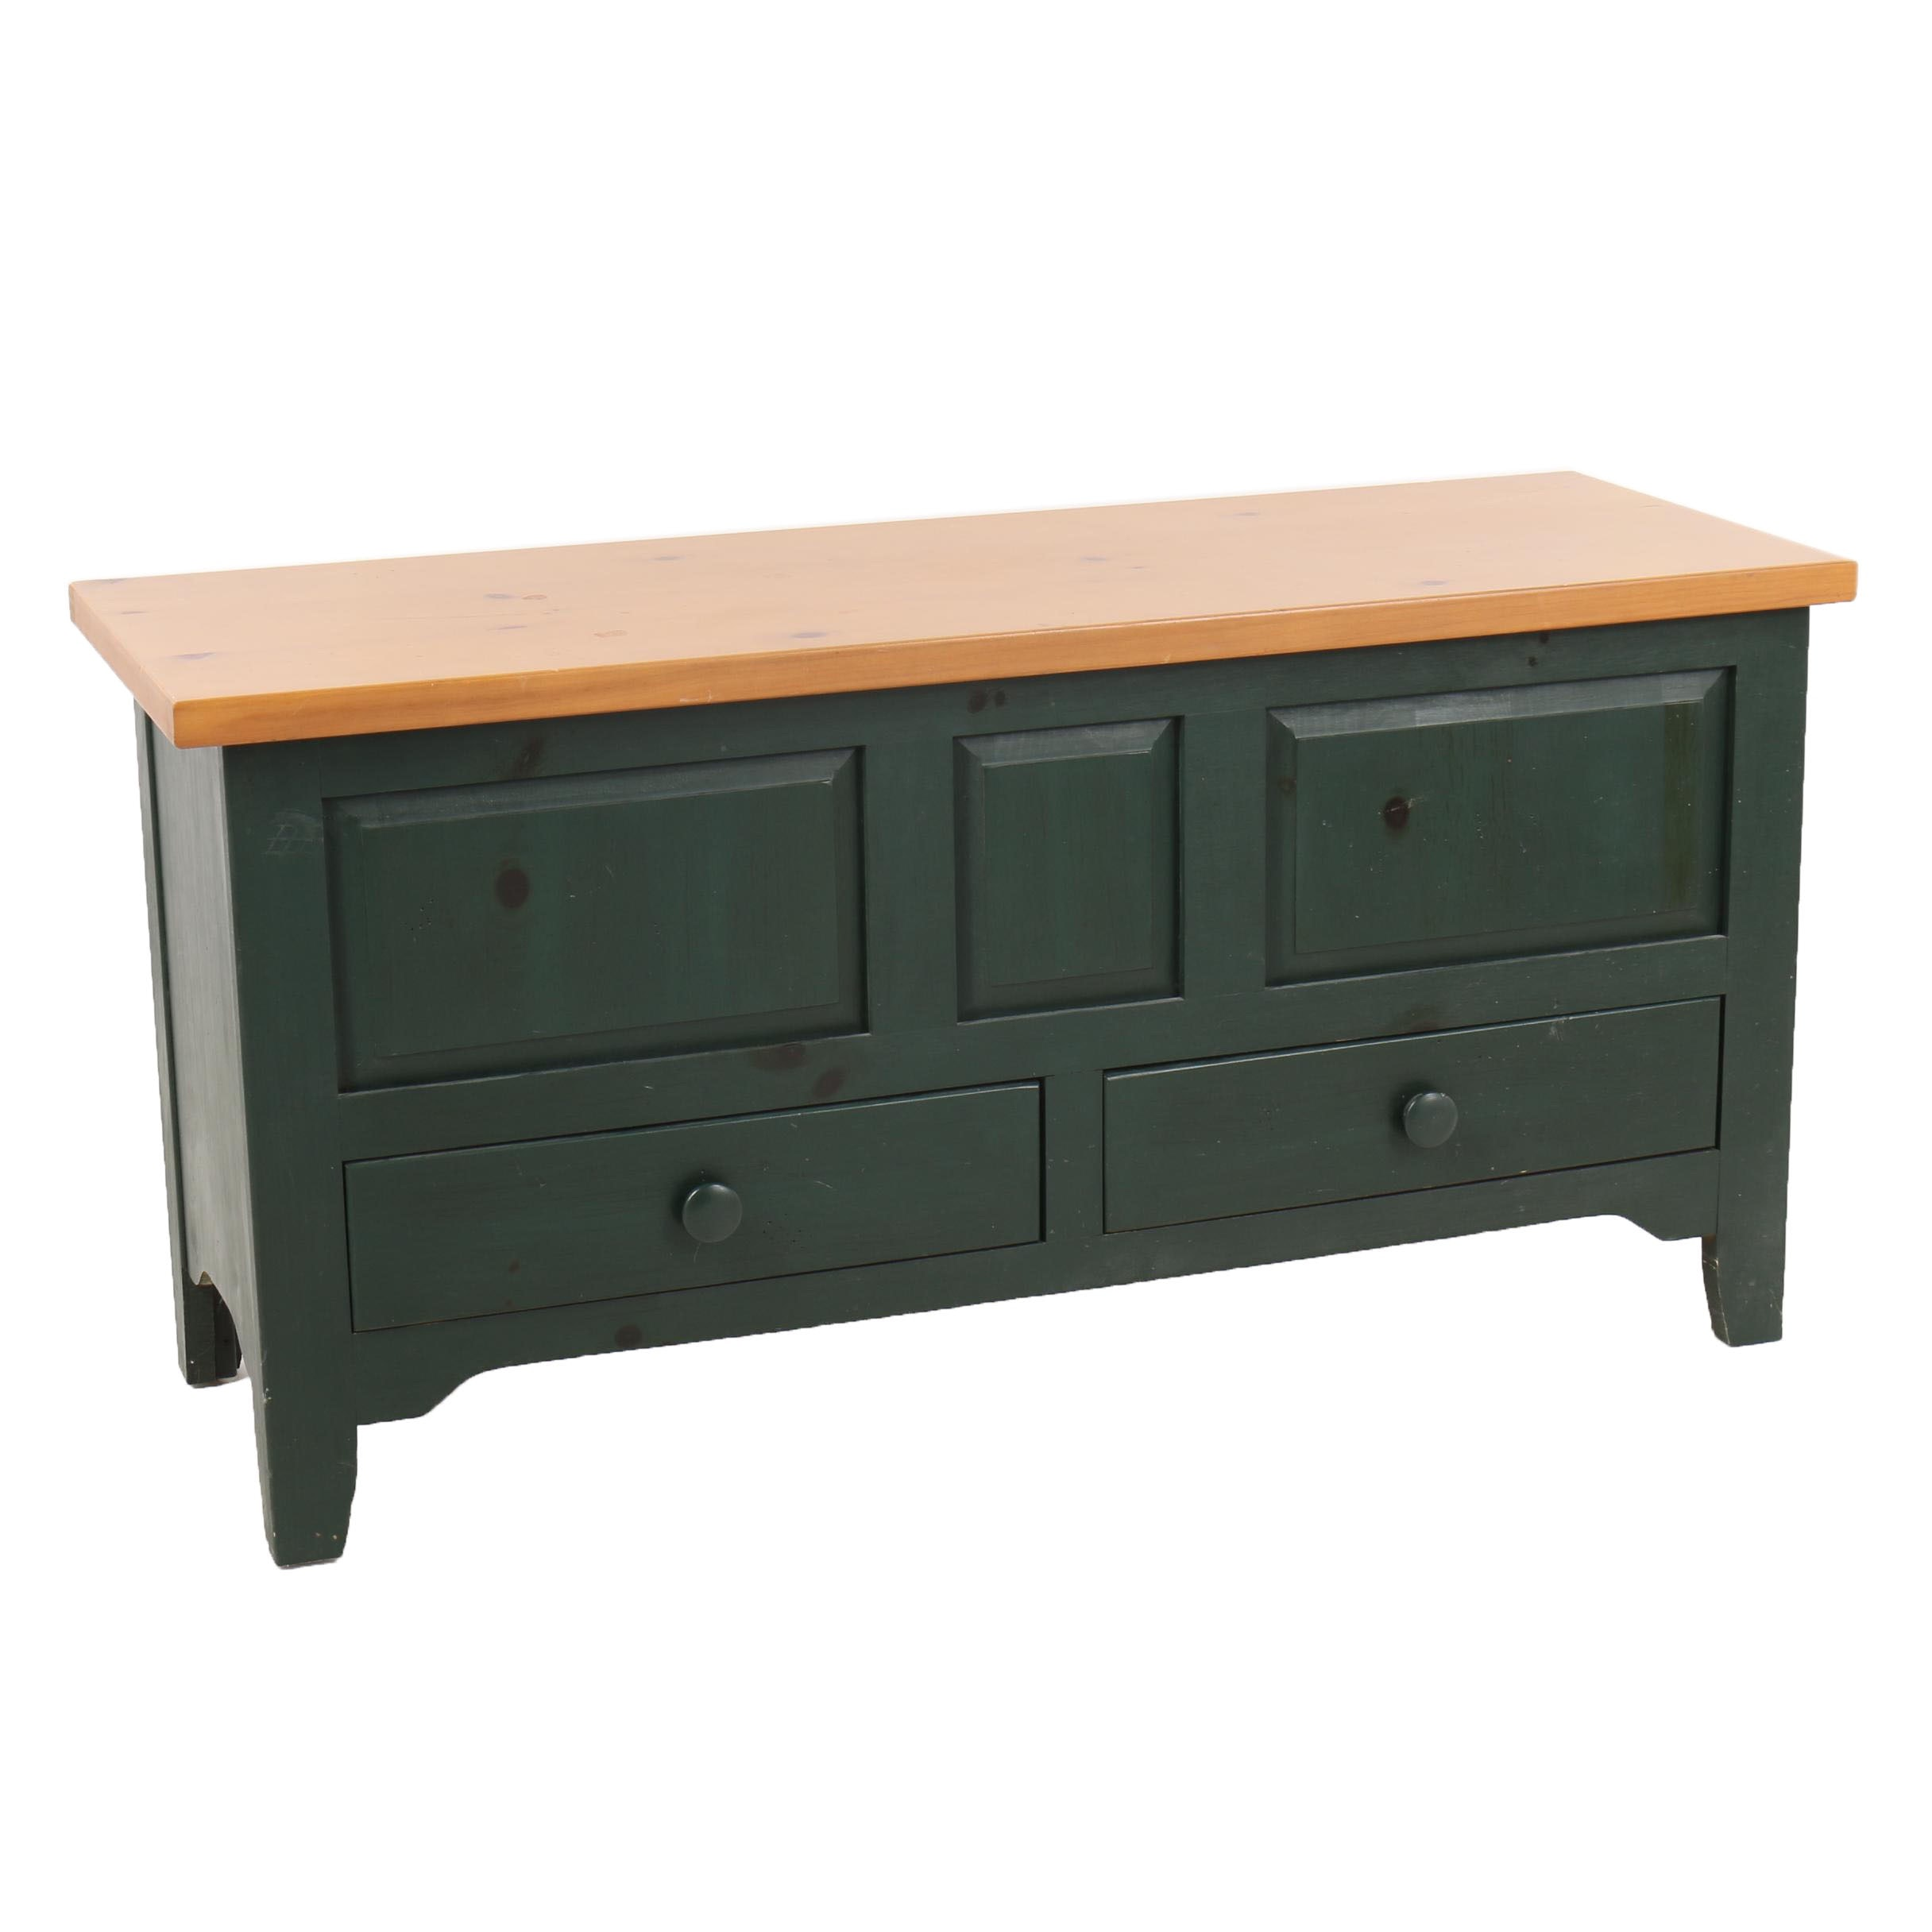 Green Painted Pine Storage Chest, 21st Century